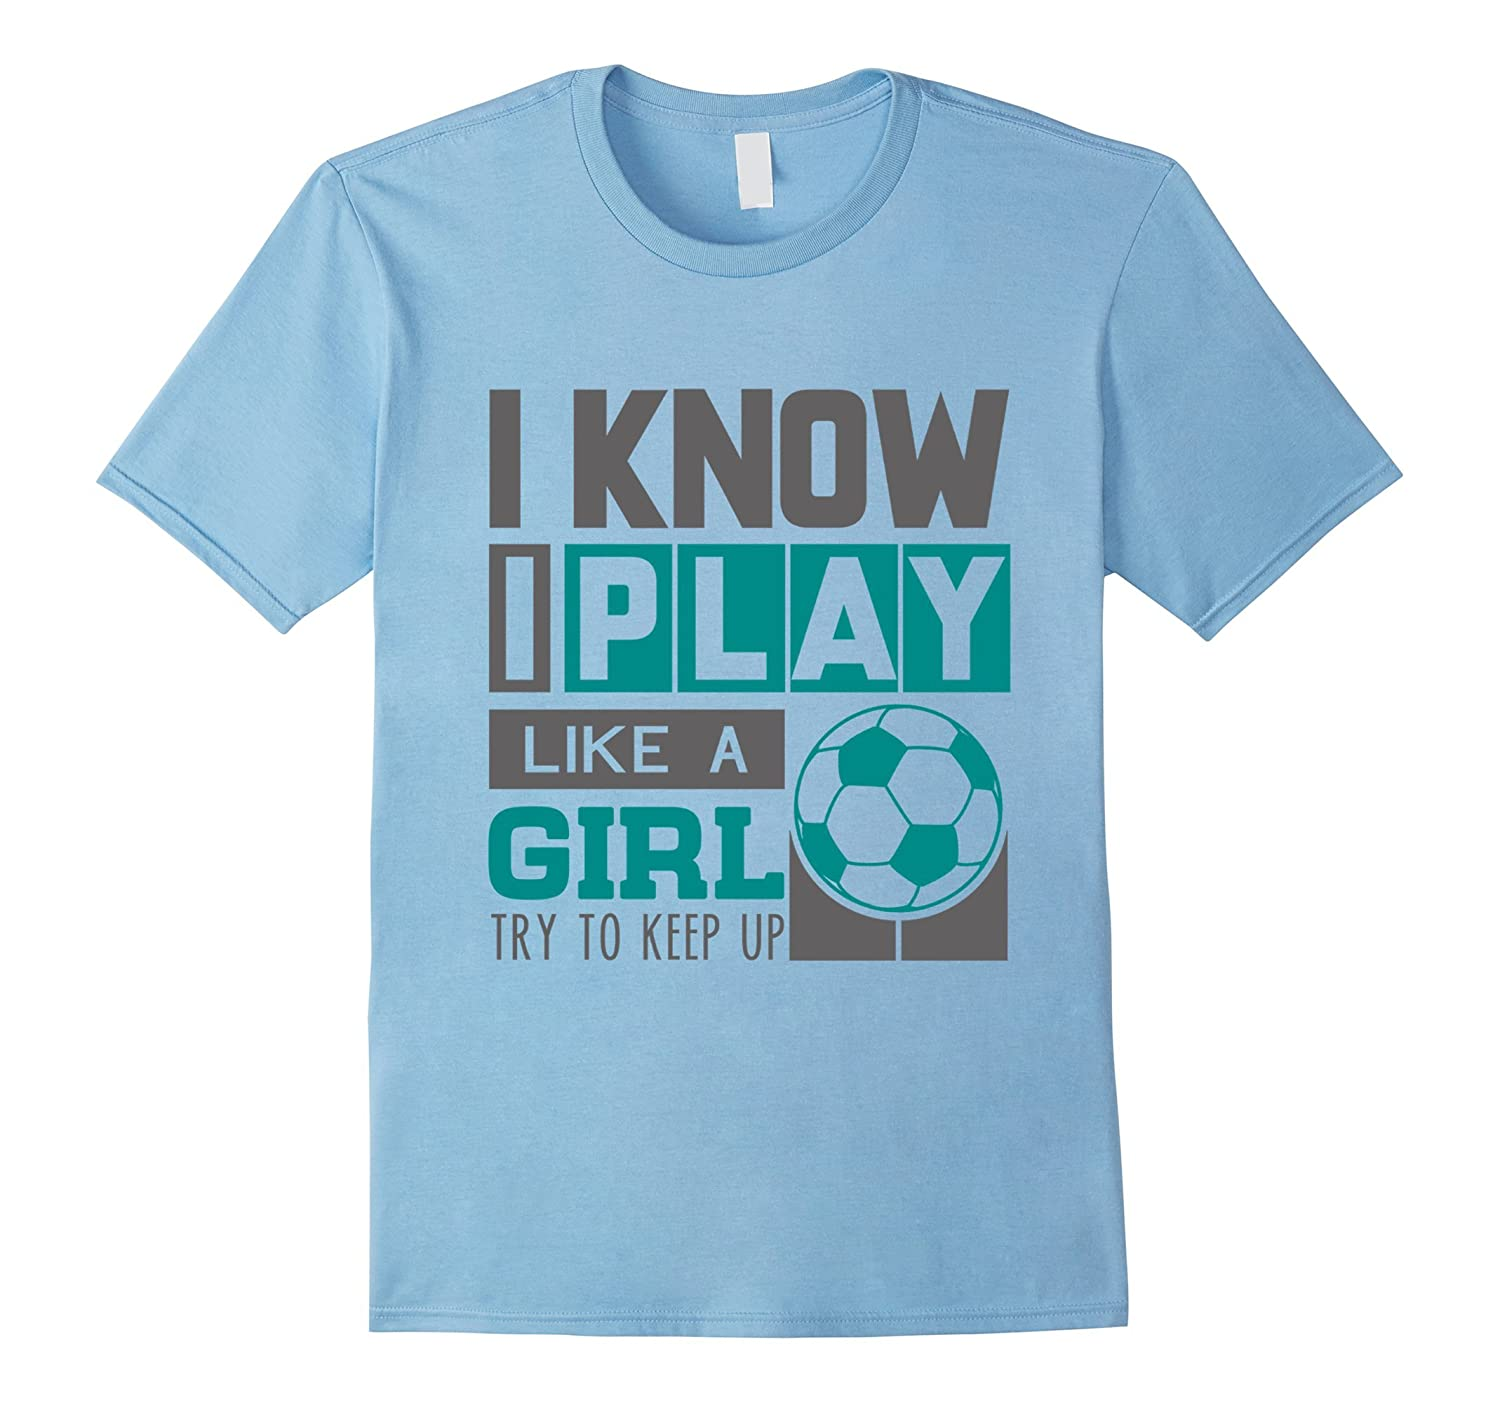 bef85b5d I Know I Play Like A Girl Soccer T-Shirt Try To Keep Up-RT – Rateeshirt